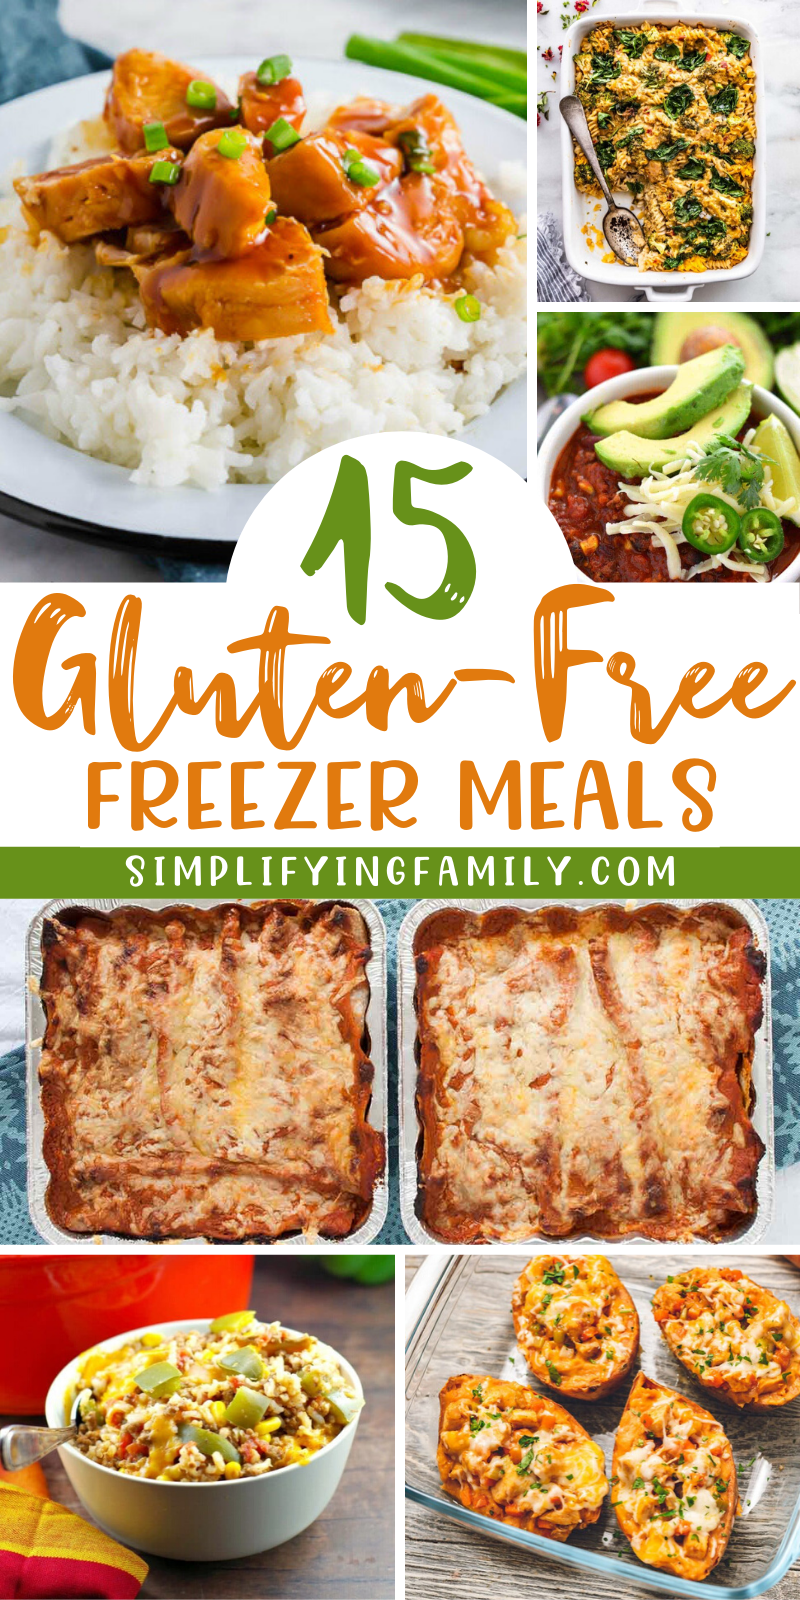 We've found 15 delicious gluten-free meals you can make to stock your freezer. You can pull a dish out to thaw, heat it when you're ready, and you have a homecooked meal with no muss or fuss at all. #glutenfree #glutenfreemealideas #freezermeals #GFfreezermeals #stockyourfreezer #allergyfriendlymeals